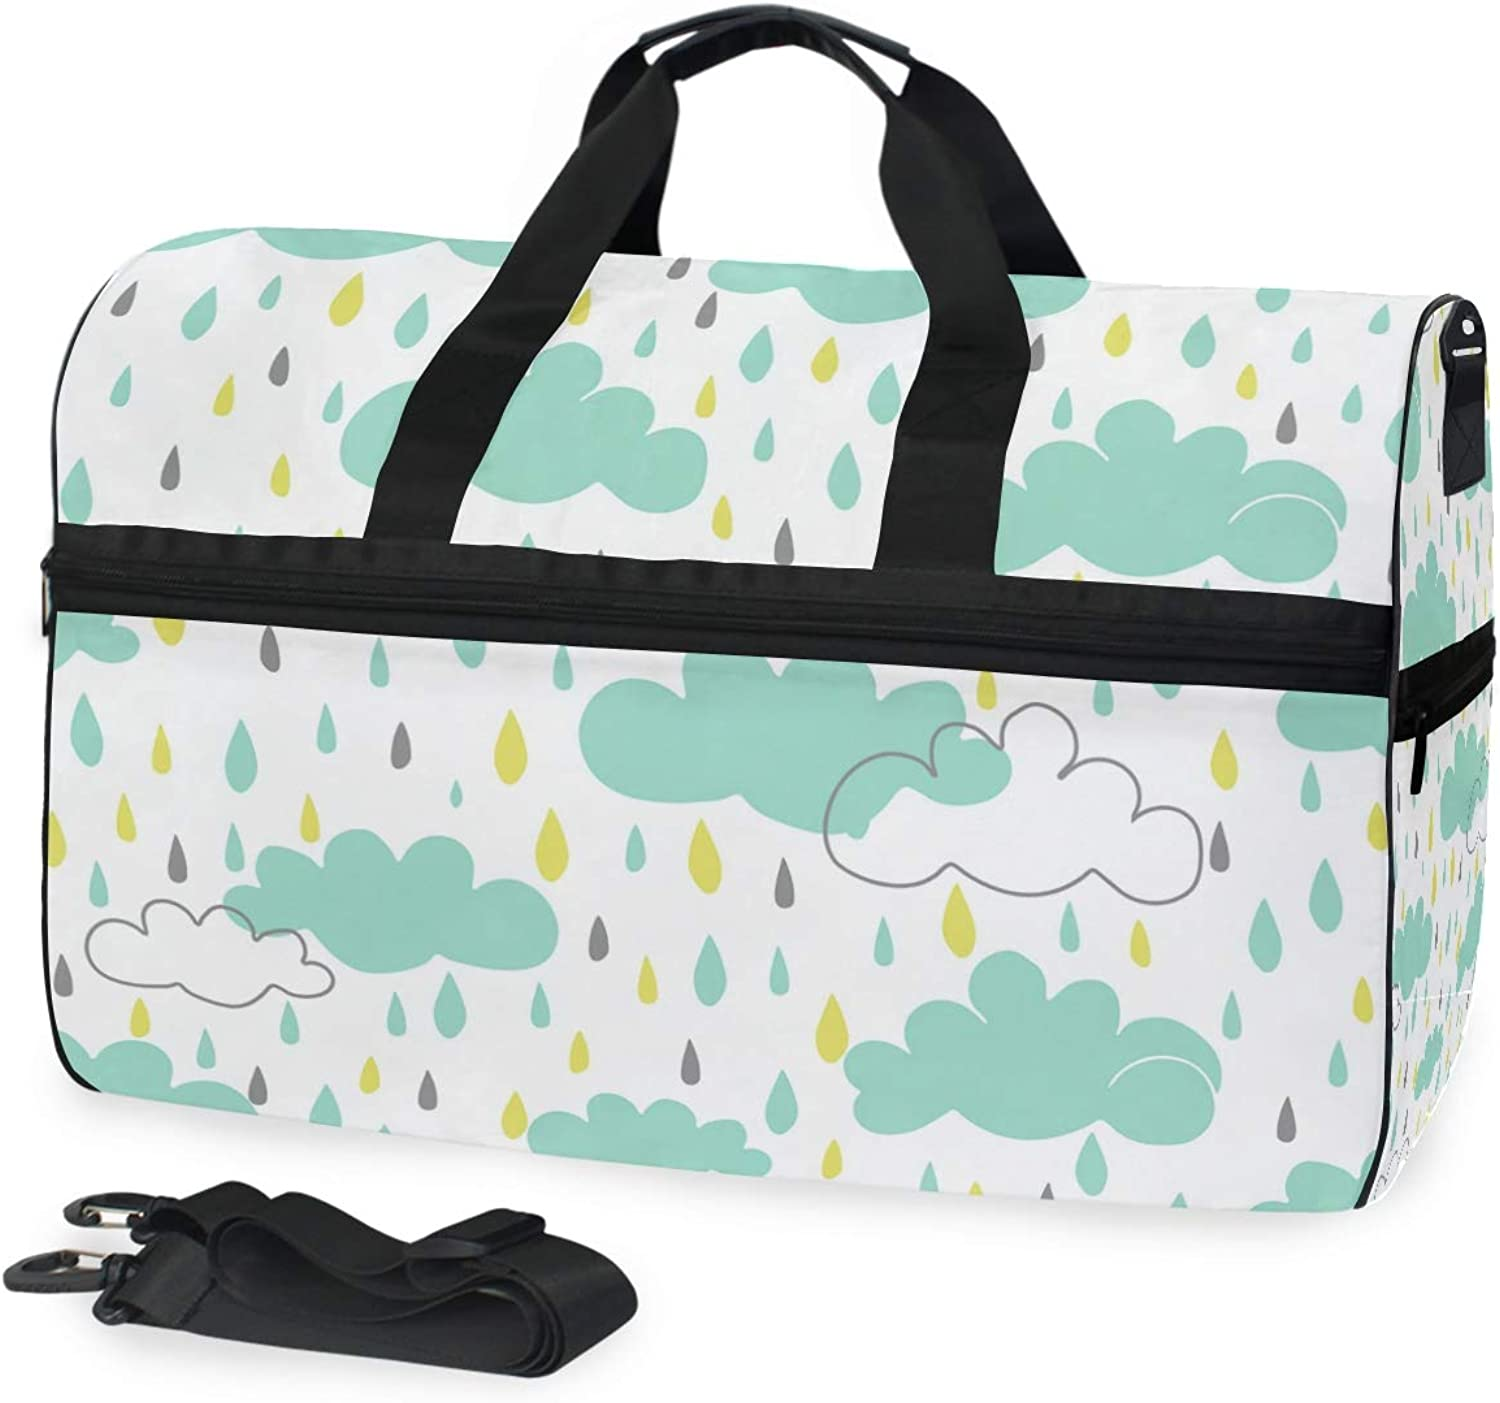 FANTAZIO Cute Rainning Sports Bag Packable Travel Duffle Bag, Lightweight Water Resistant Tear Resistant